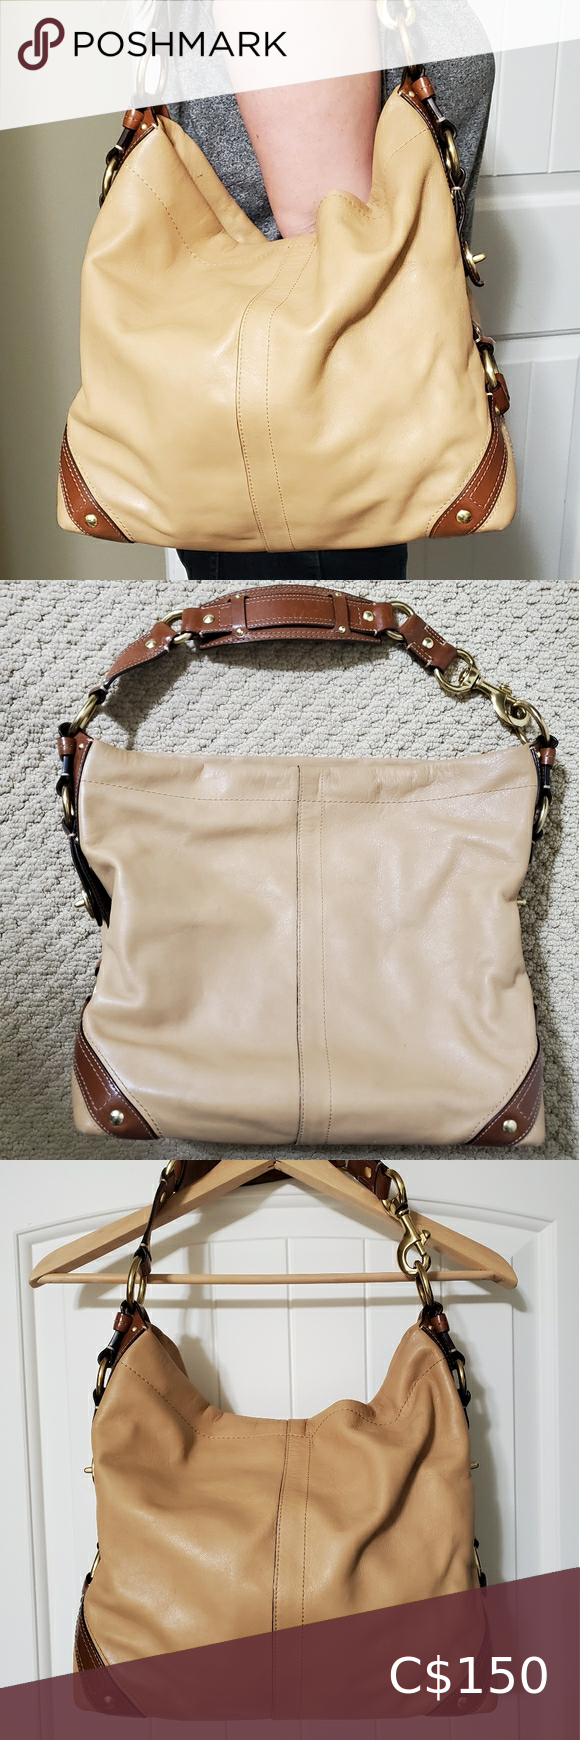 Coach Carly bag in tan leather